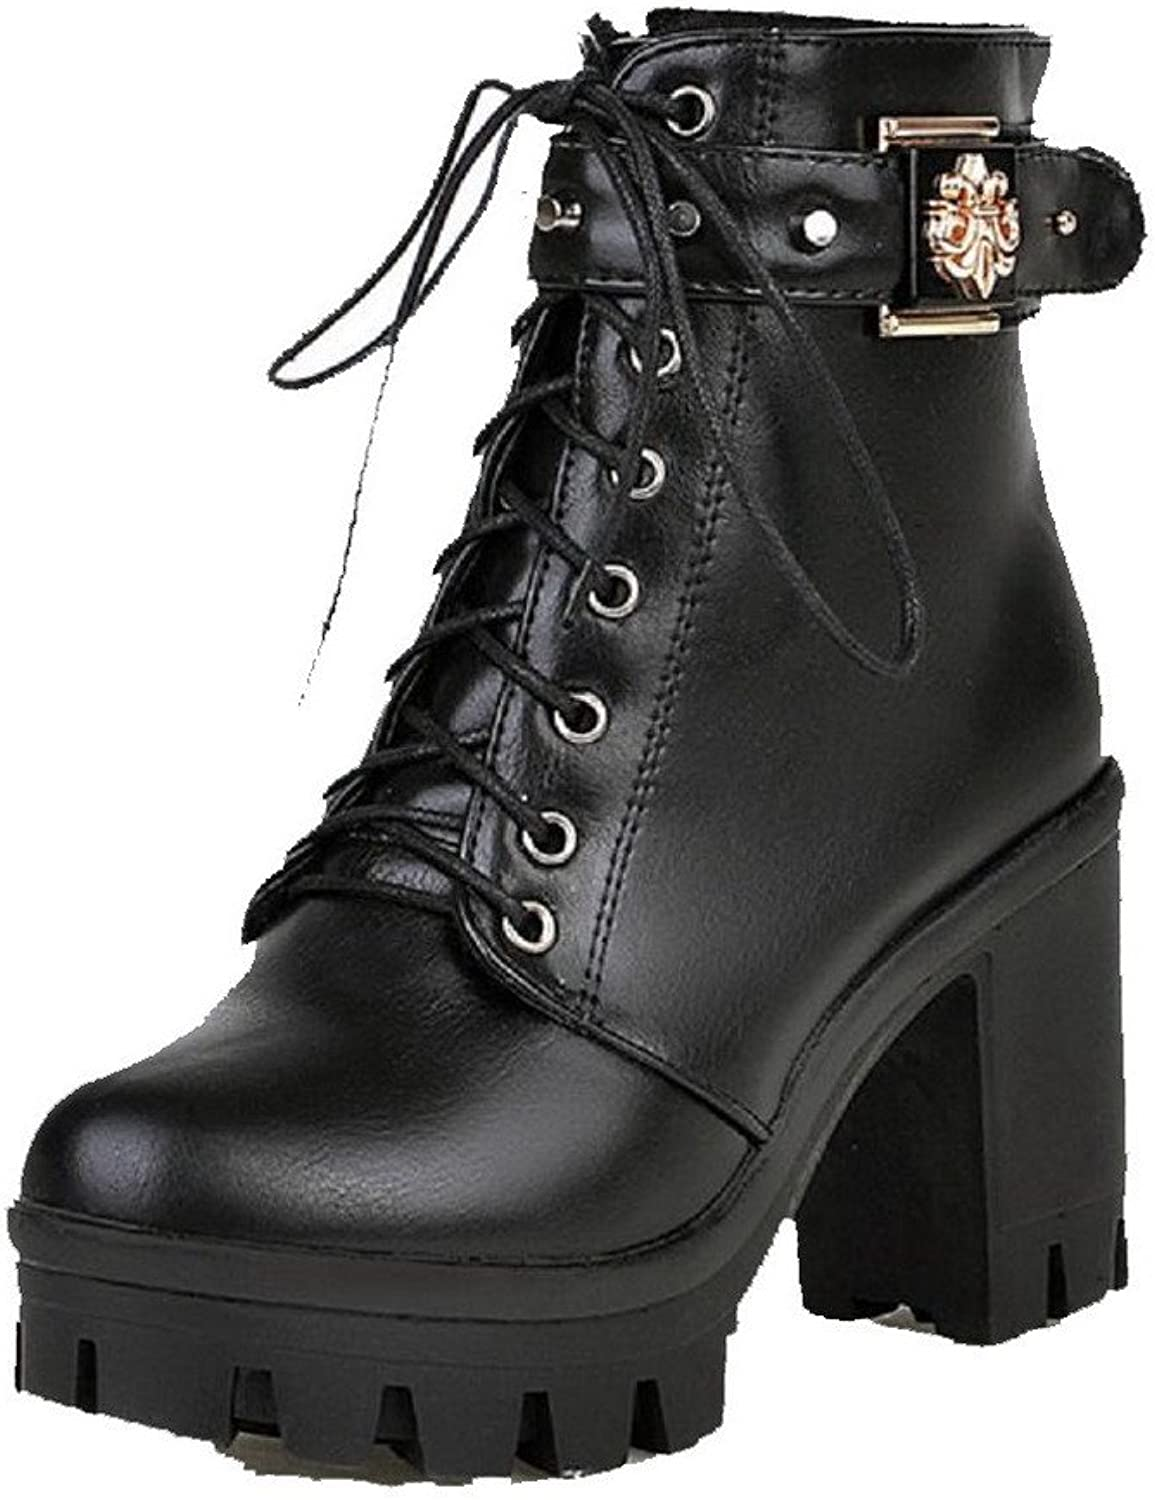 AllhqFashion Women's Round Closed Toe Low-Top High-Heels Solid PU Boots with Rivet